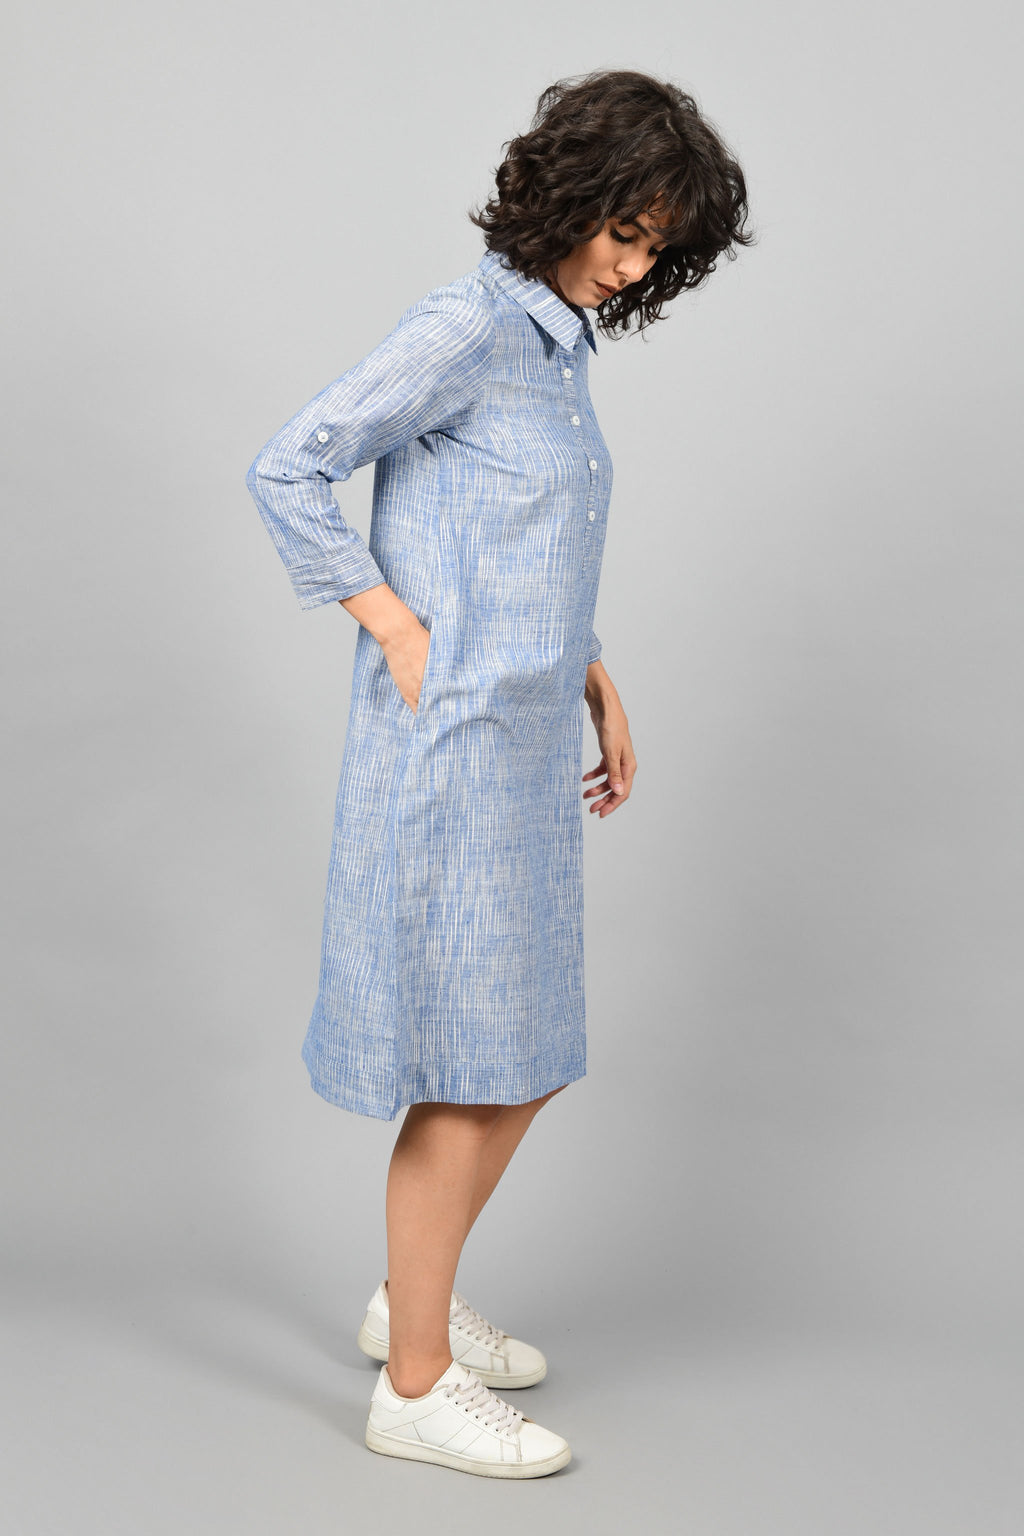 side pose of a model wearing a shirt dress in blue and white space dyed fine handspun handwoven khadi cotton from west bengal